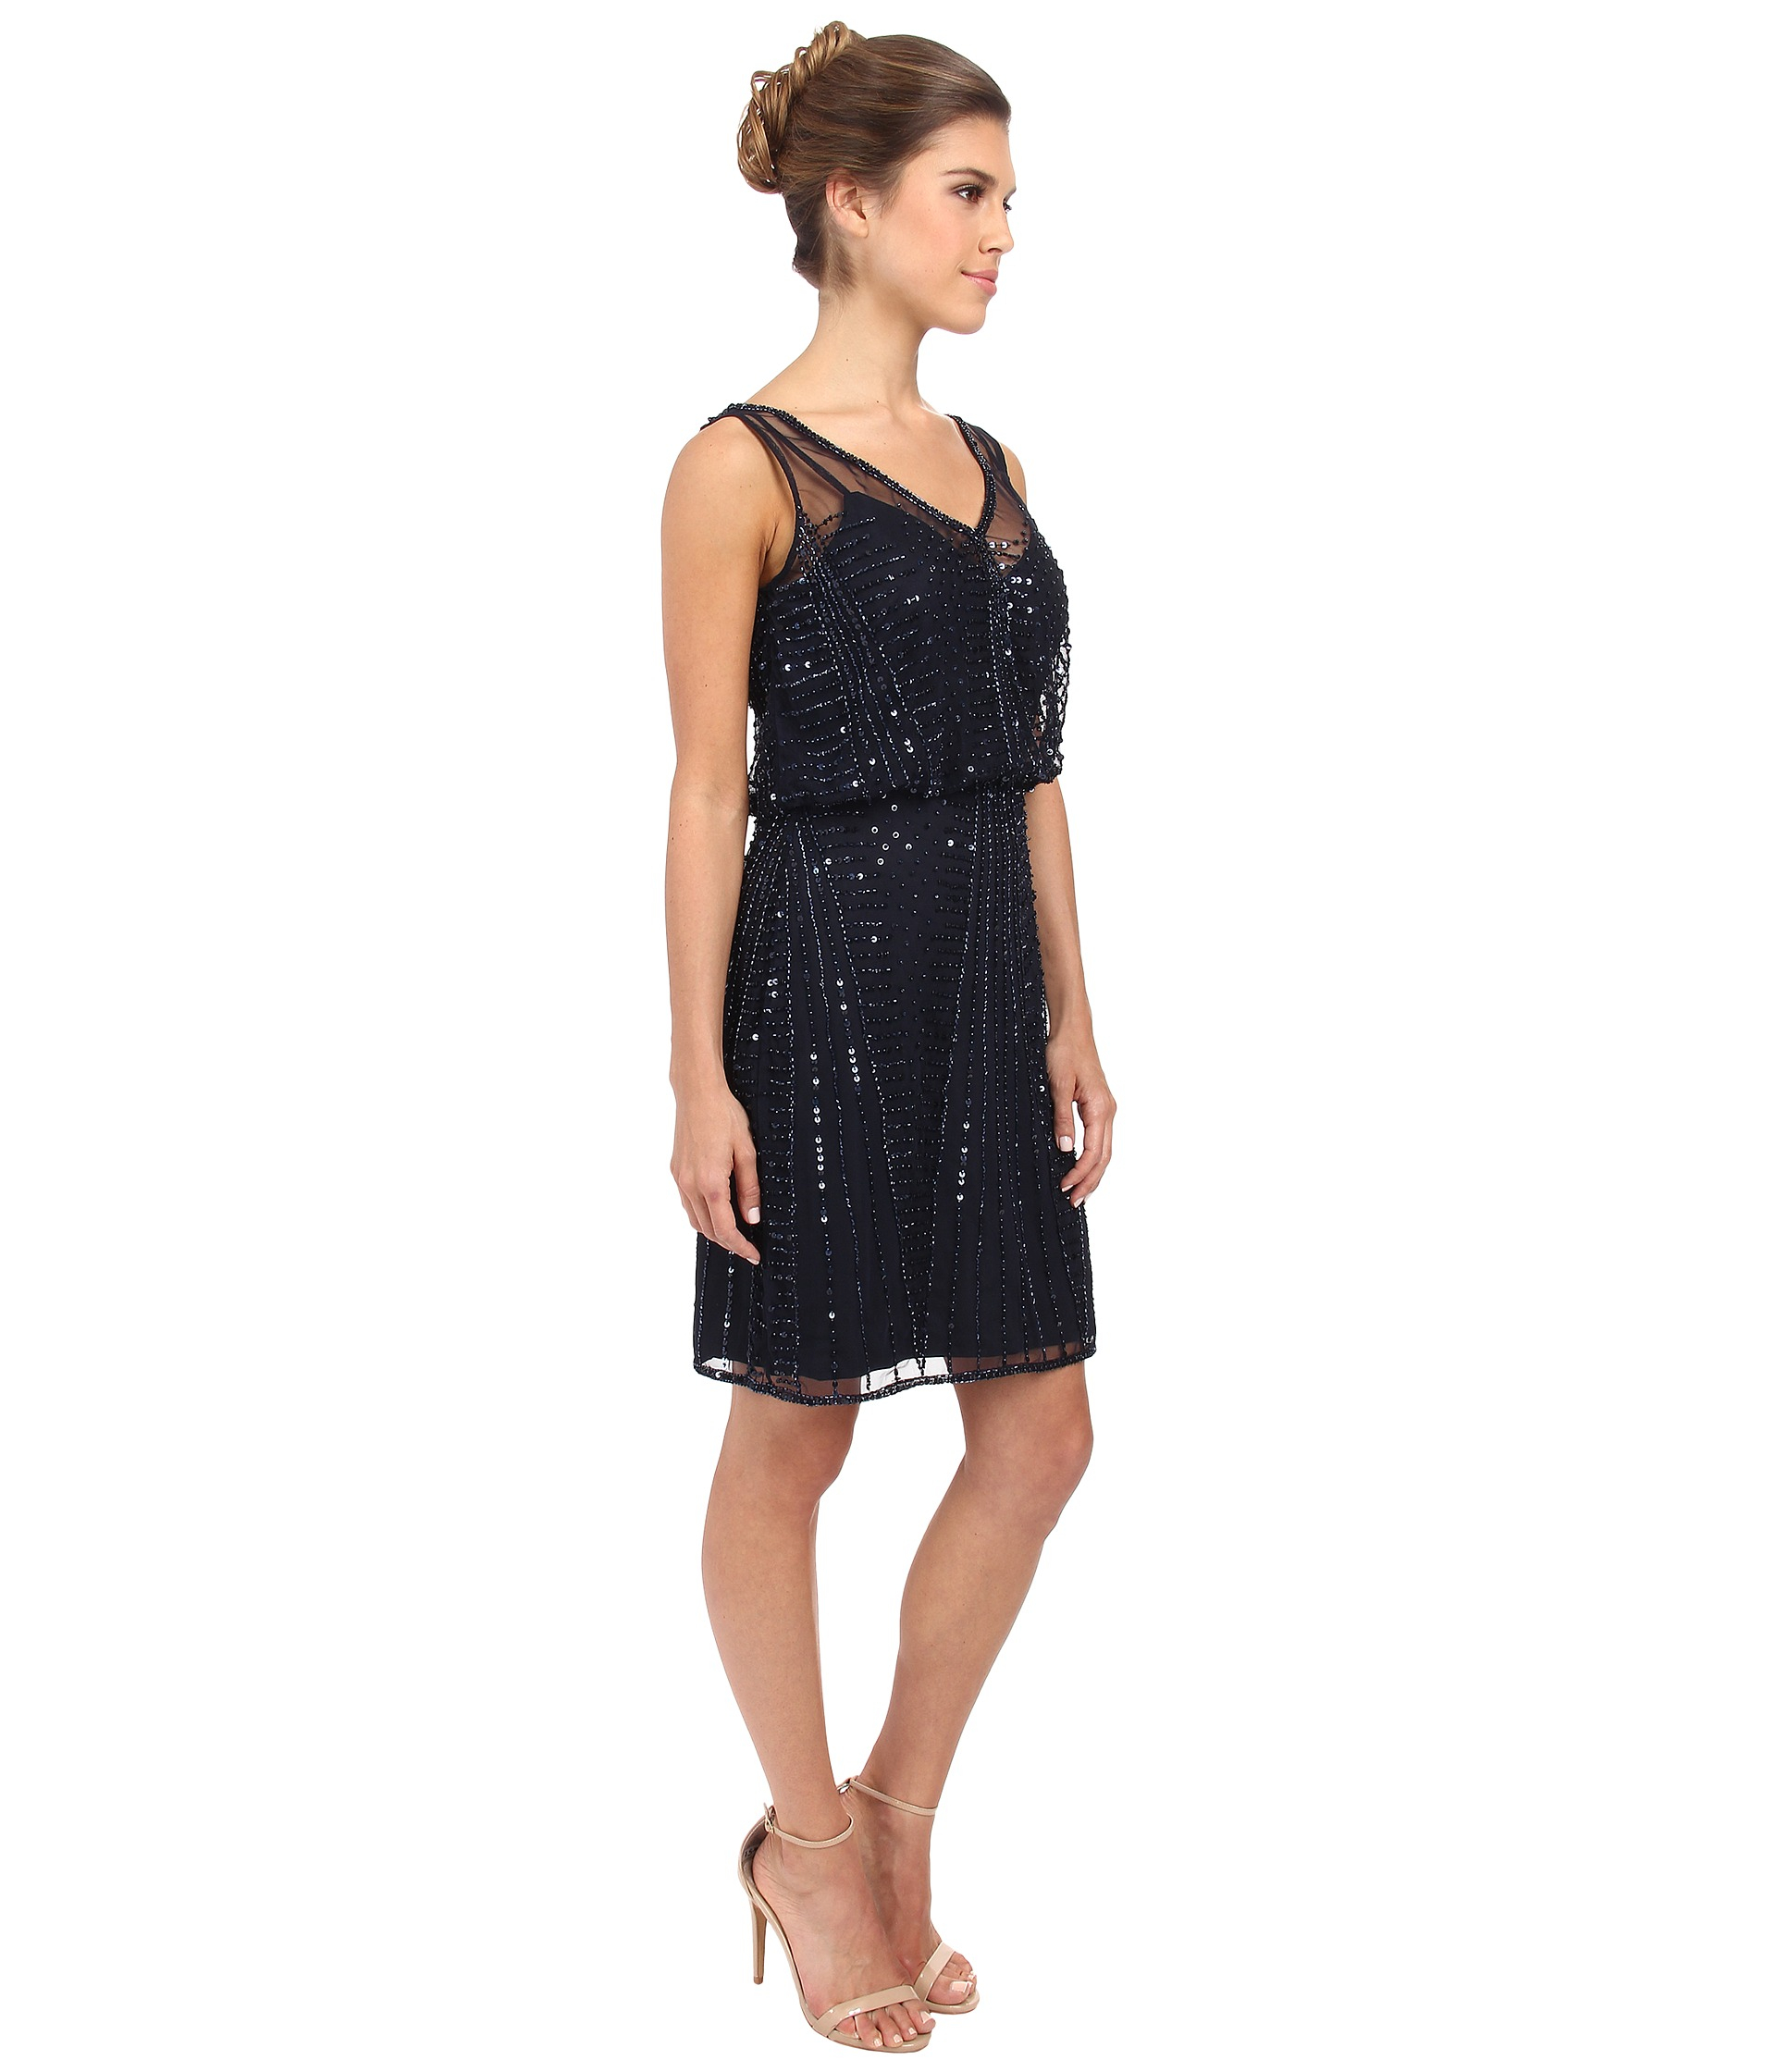 Adrianna Papell Cocktail Dresses